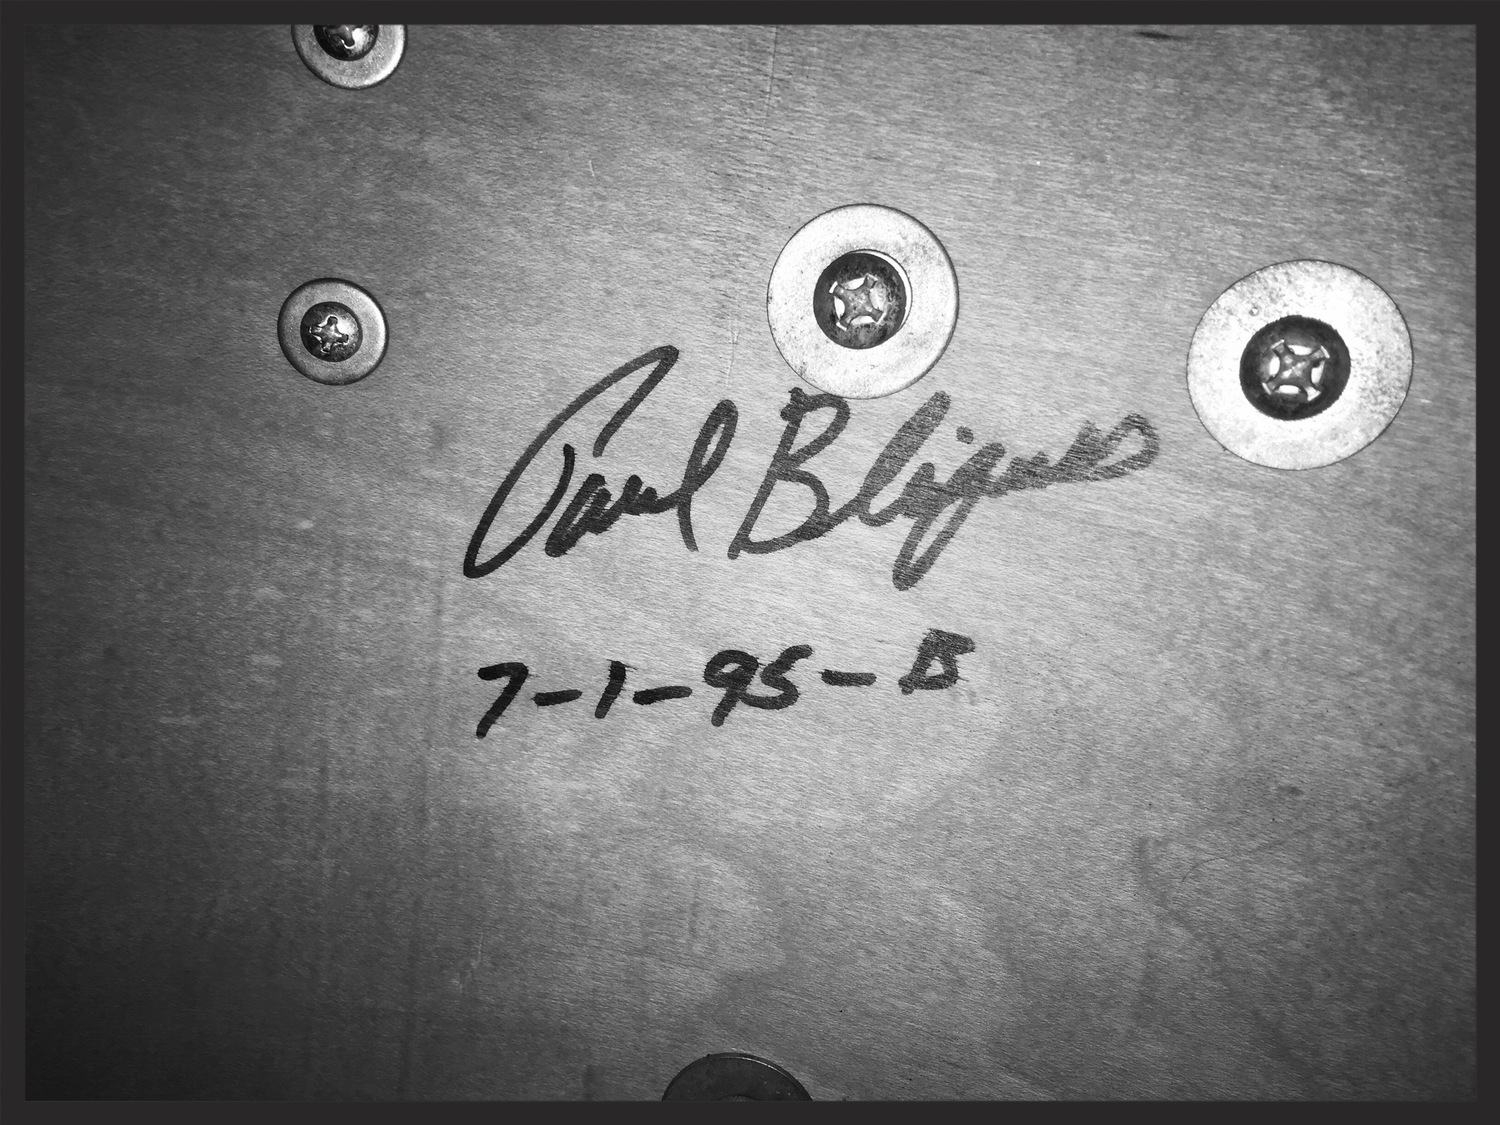 Paul signed the inside of each drum he made. This is the signature inside my bass drum, showing that the kit will indeed turn twentyyears old this year!